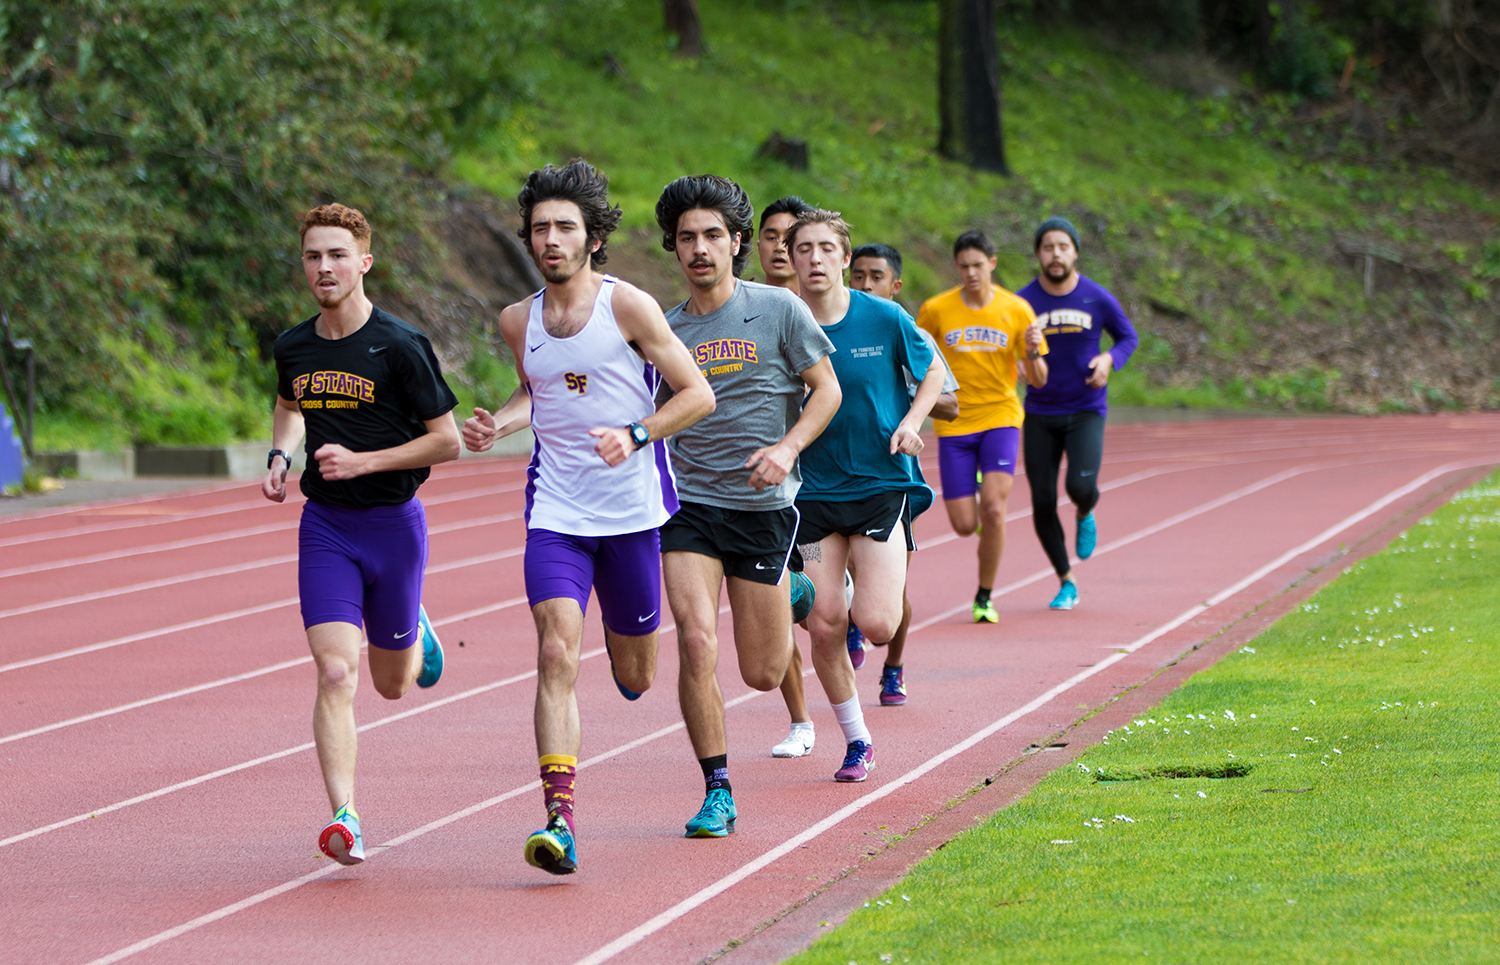 The San Francisco State men's track team practices on Feb. 27, 2019, at San Francisco State. (Christine Jacobson / SF State Athletics)